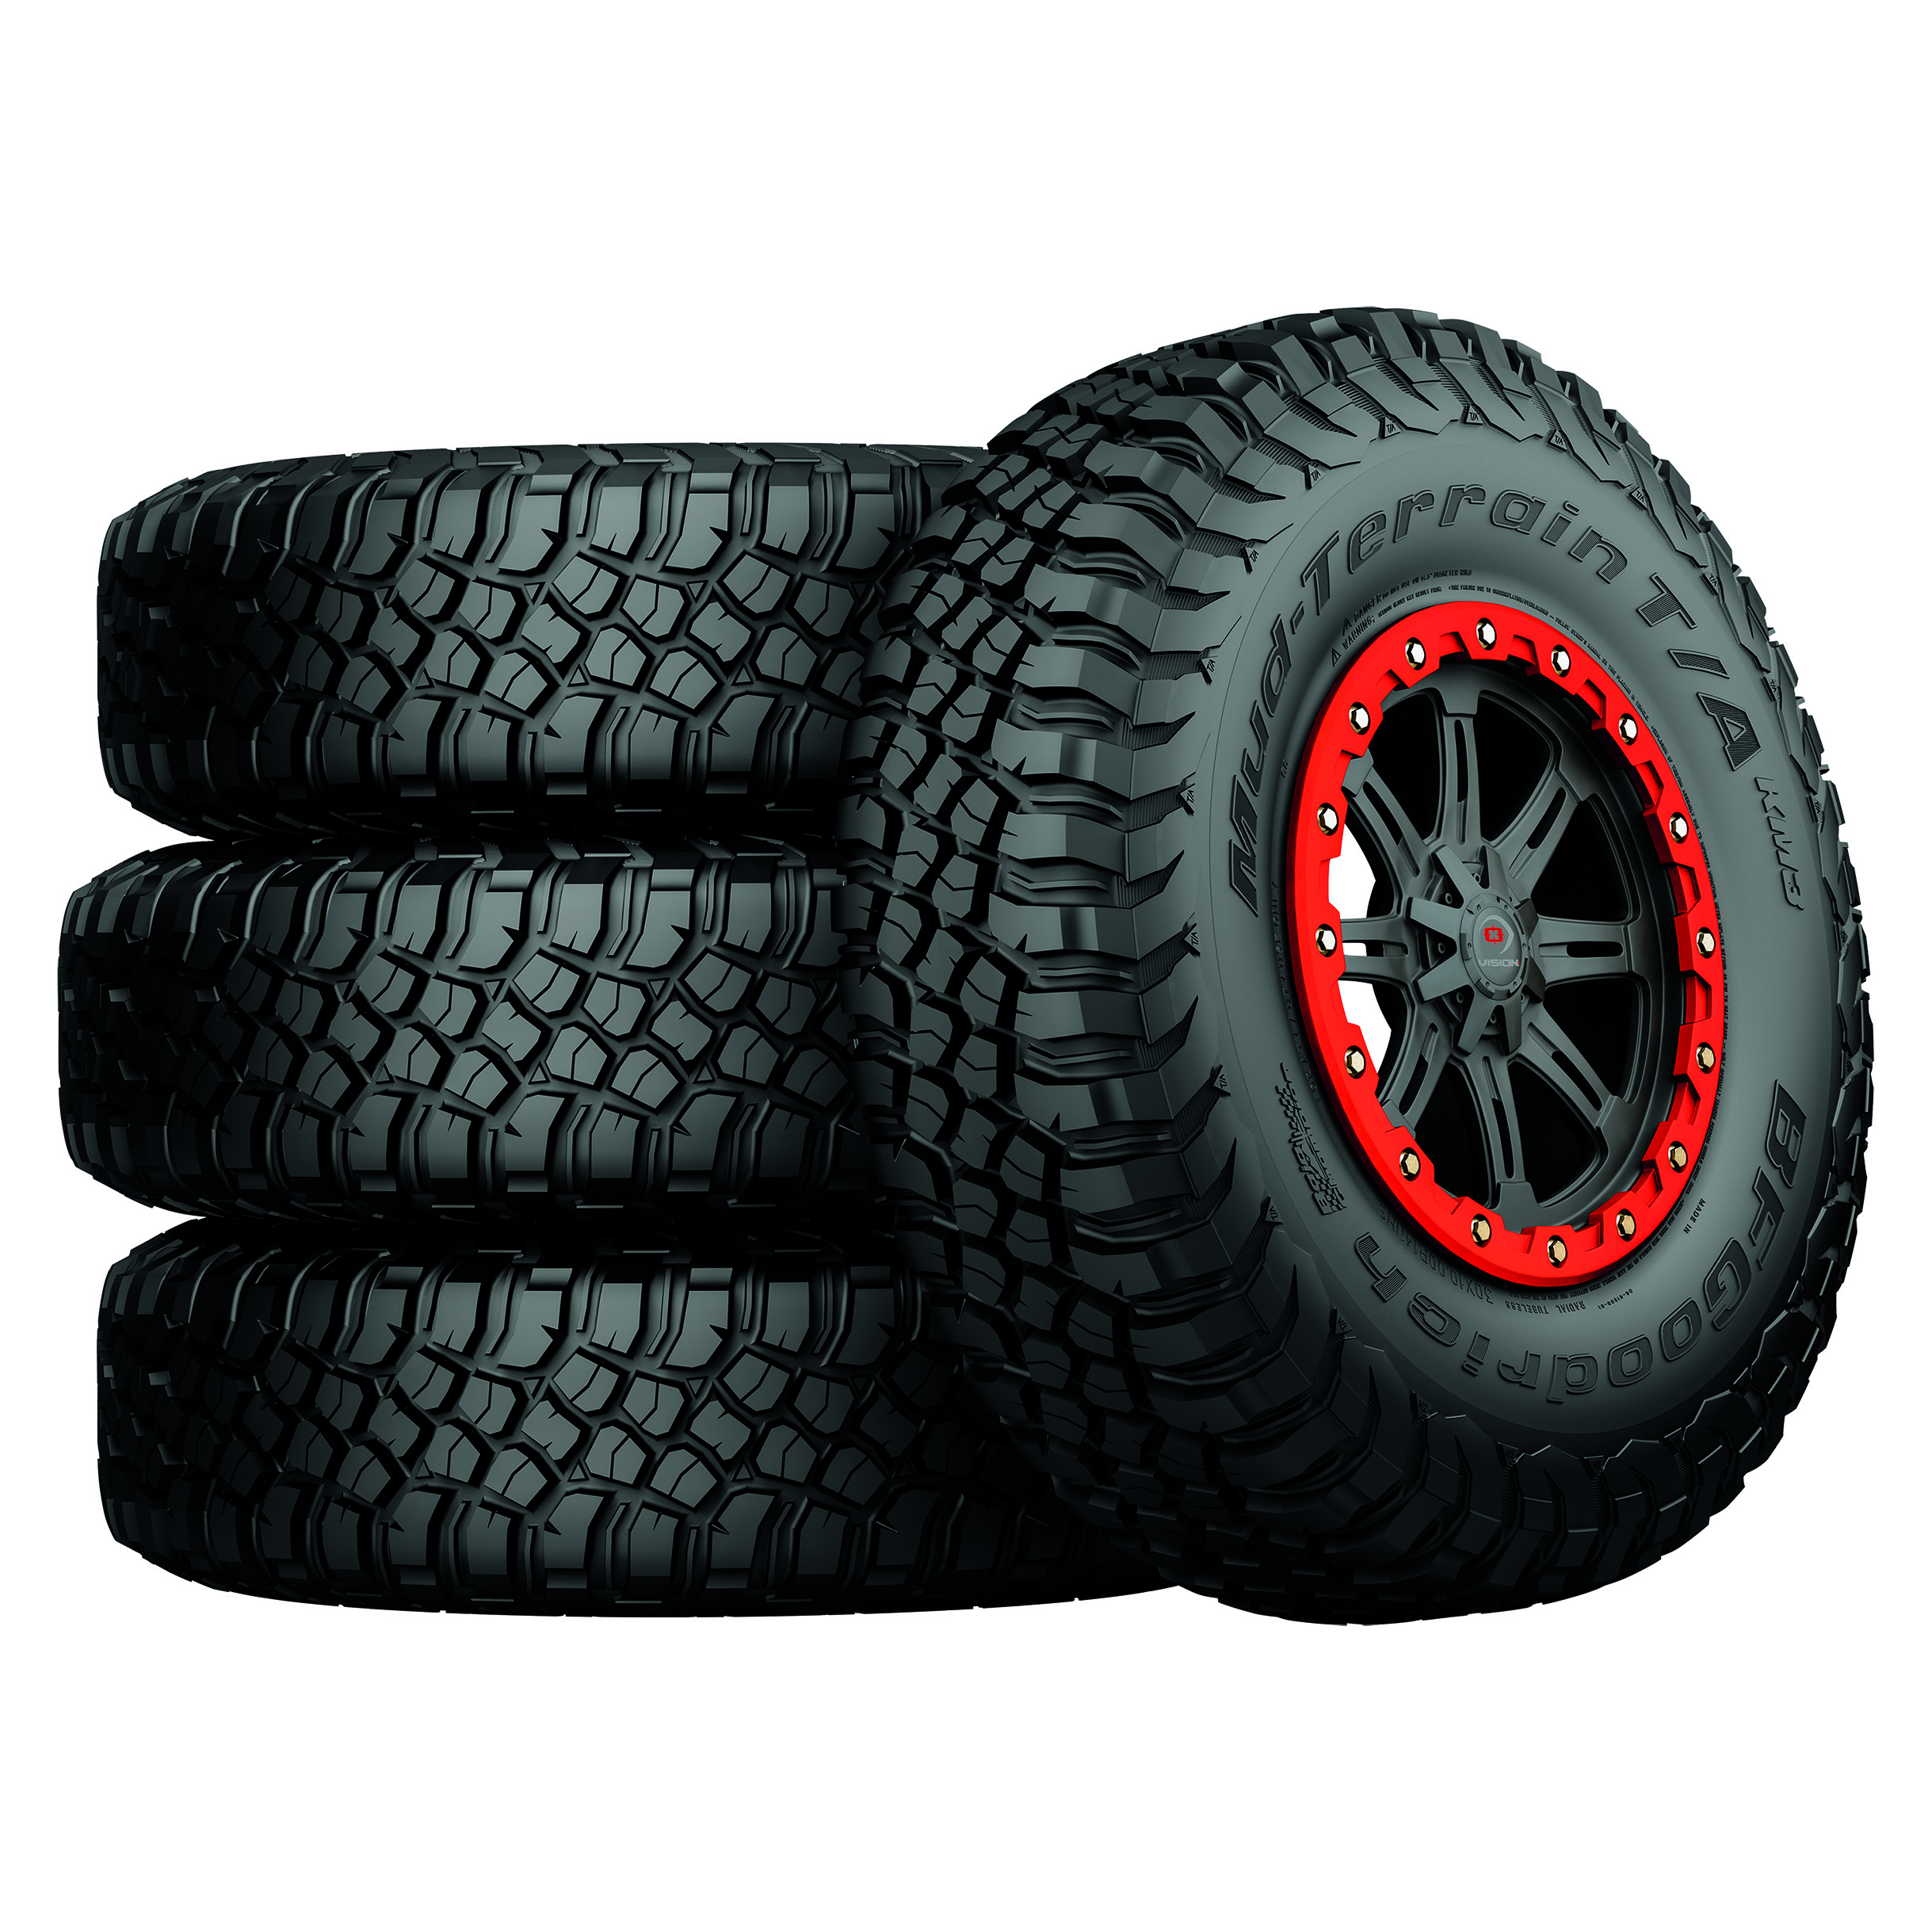 Latest BFGoodrich M/T Tire Comes in UTV Sizes